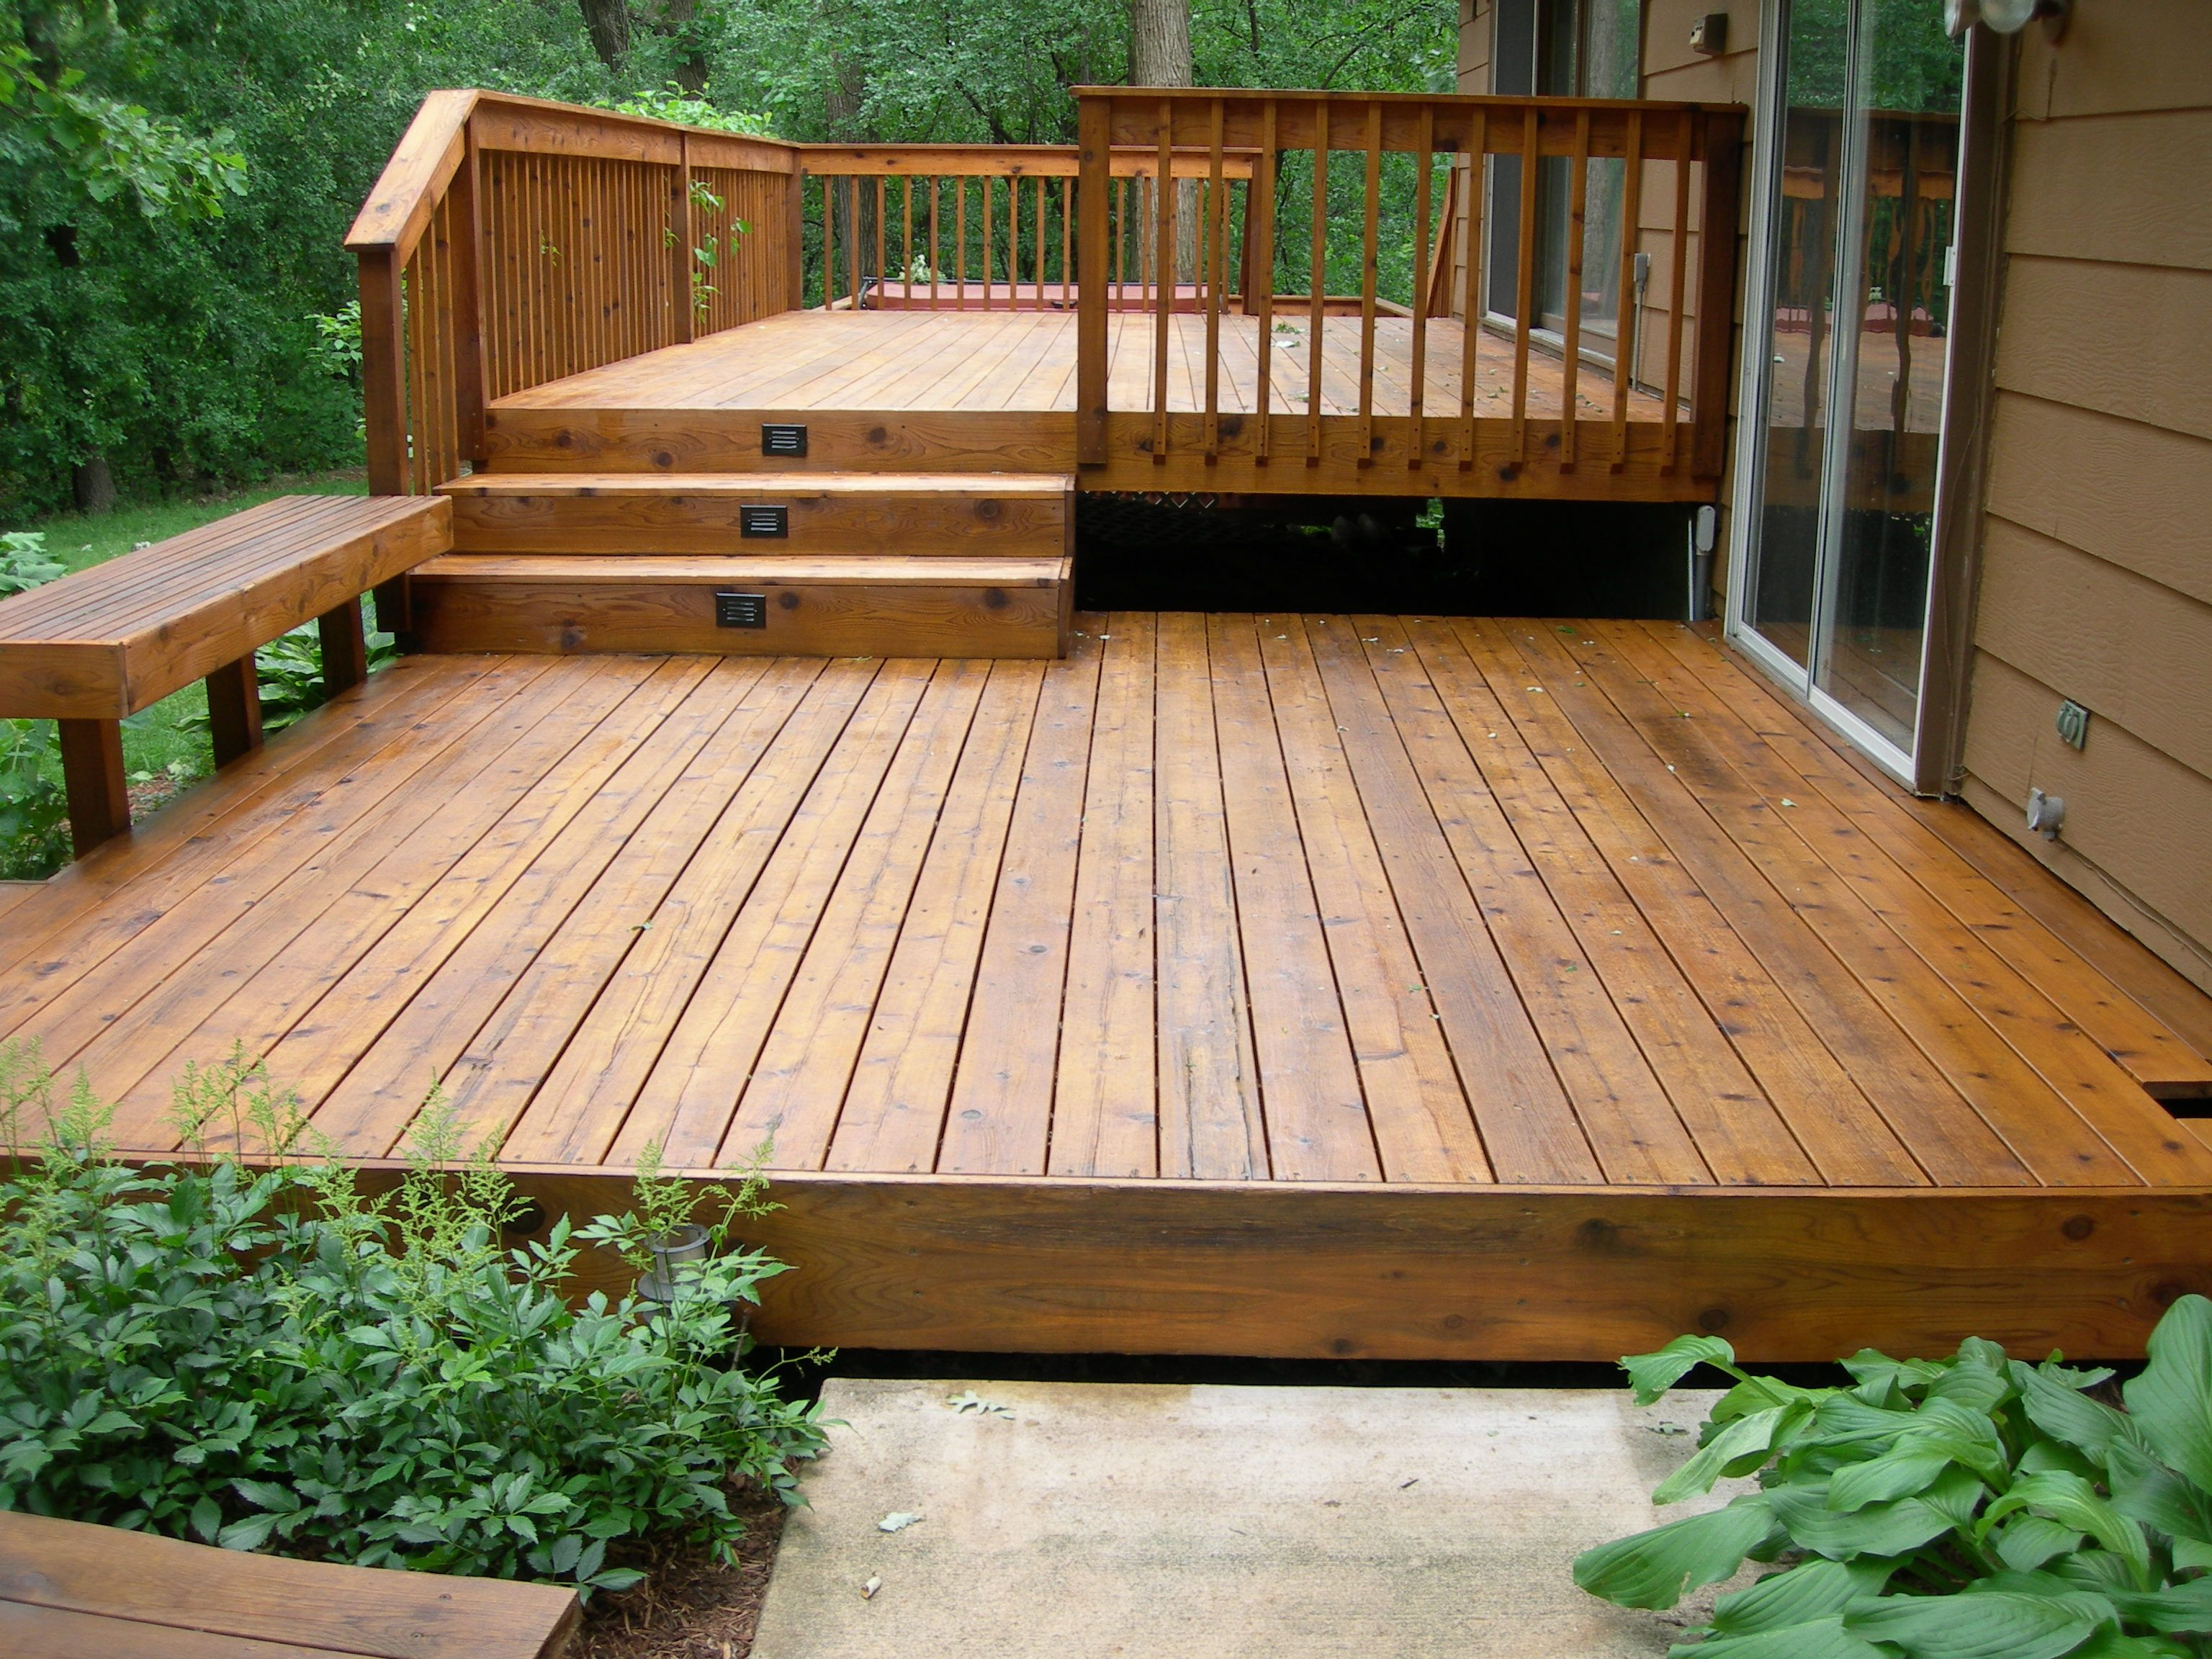 Great deck ideas sunset insteadfront yard entry deck great flooring pictures of decks design idea pictures of decks for patio design outdoor deck construction deck designers quality paint plus floorings baanklon Image collections